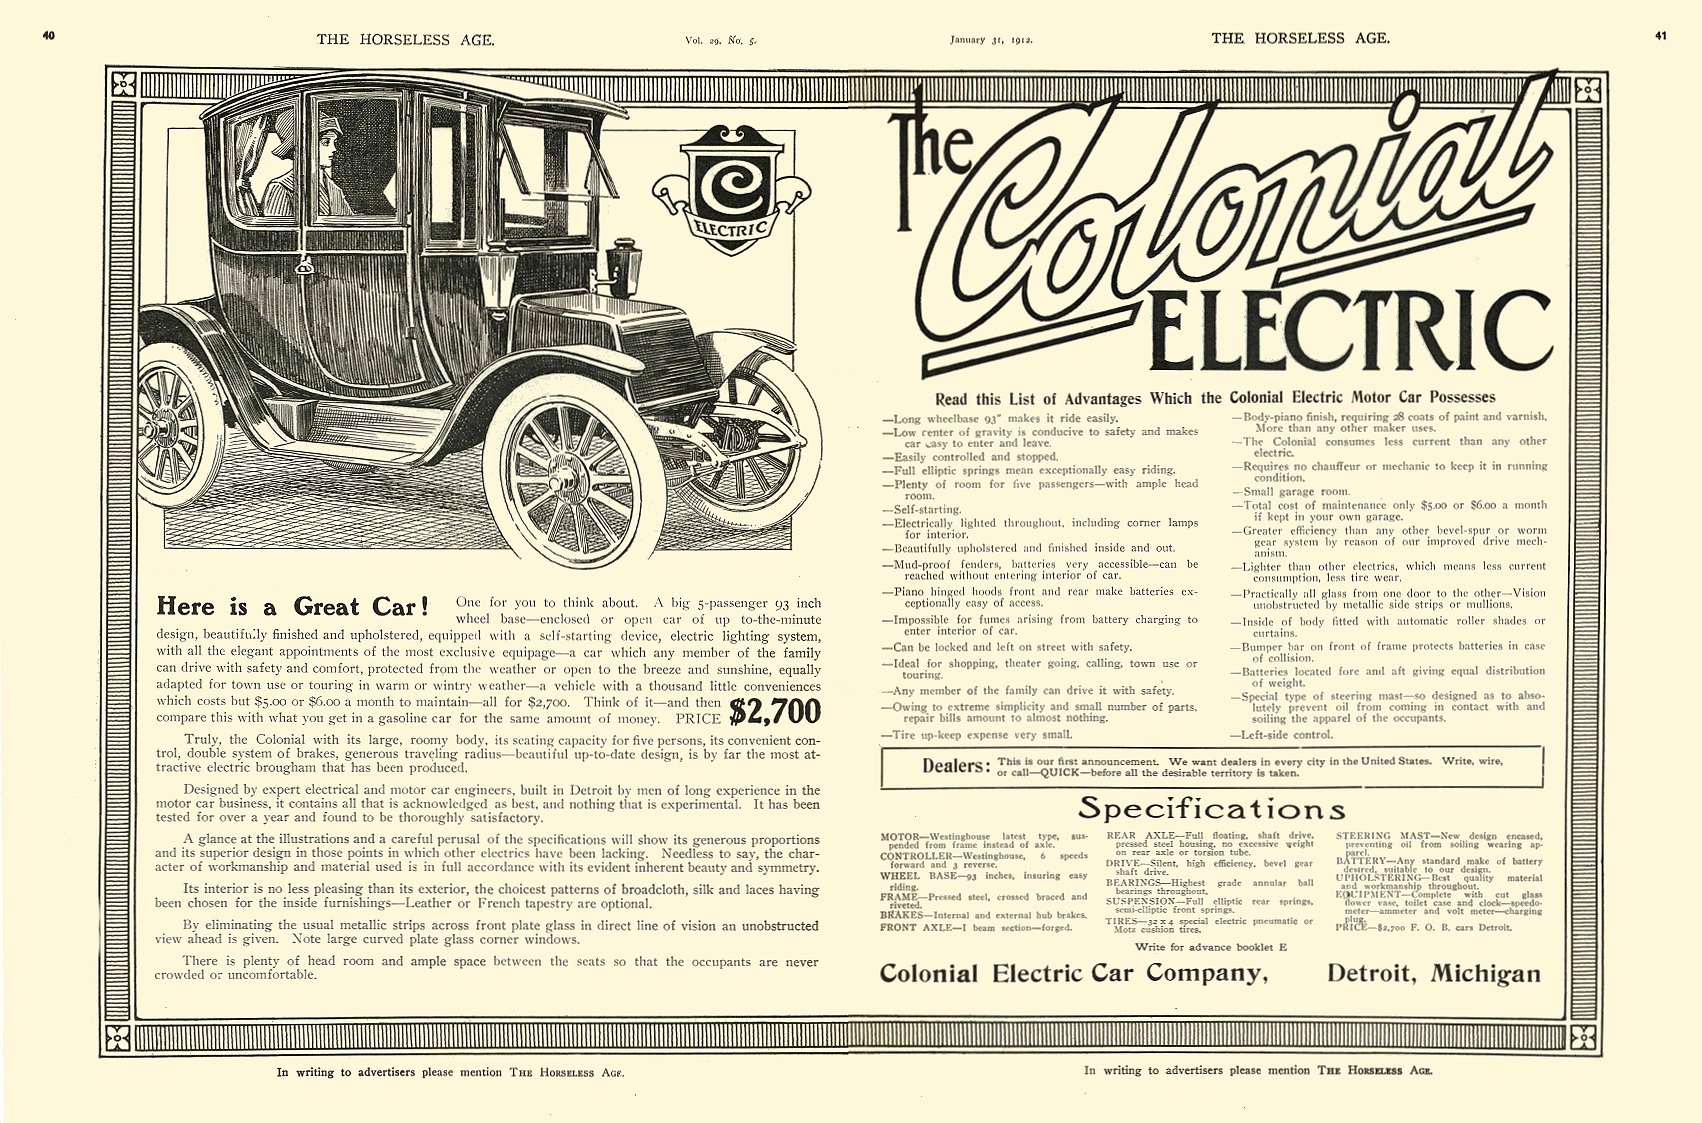 1912 1 31 COLONIAL Here is a Great Car! $2,700 Colonial Electric Car Company Detroit, MICH THE HORSELESS AGE January 31, 1912 8.5″x12″ pages 40 & 41